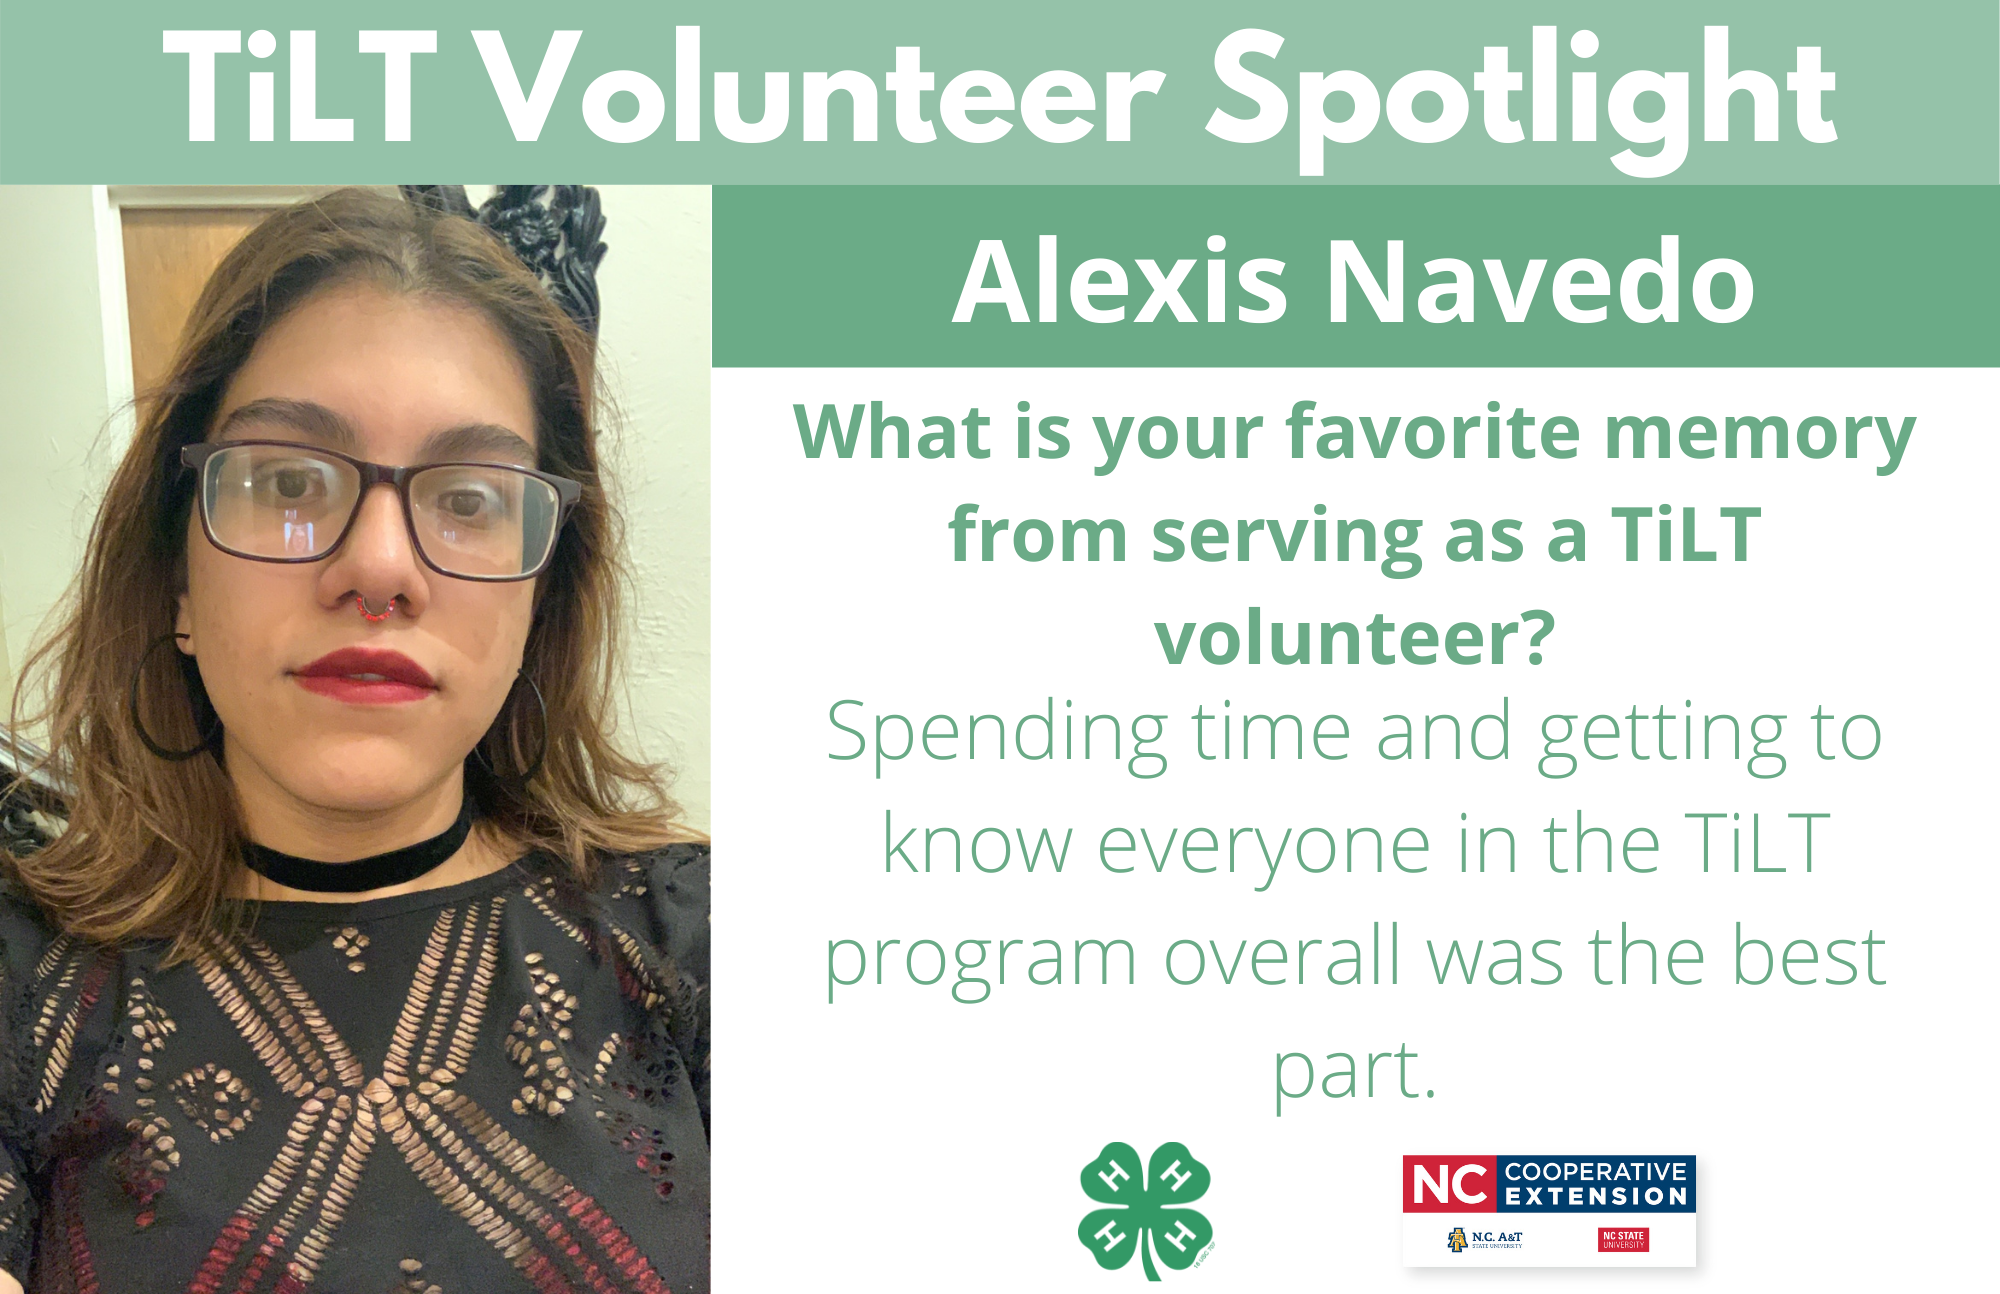 Headshot of Alexis Navedo with following text to the right of image. TiLT Volunteer Spotlight. Alexis Navedo. What is your favorite memory from serving as a TiLT volunteer? Spending time and getting to know everyone in the TiLT program overall was the best part.